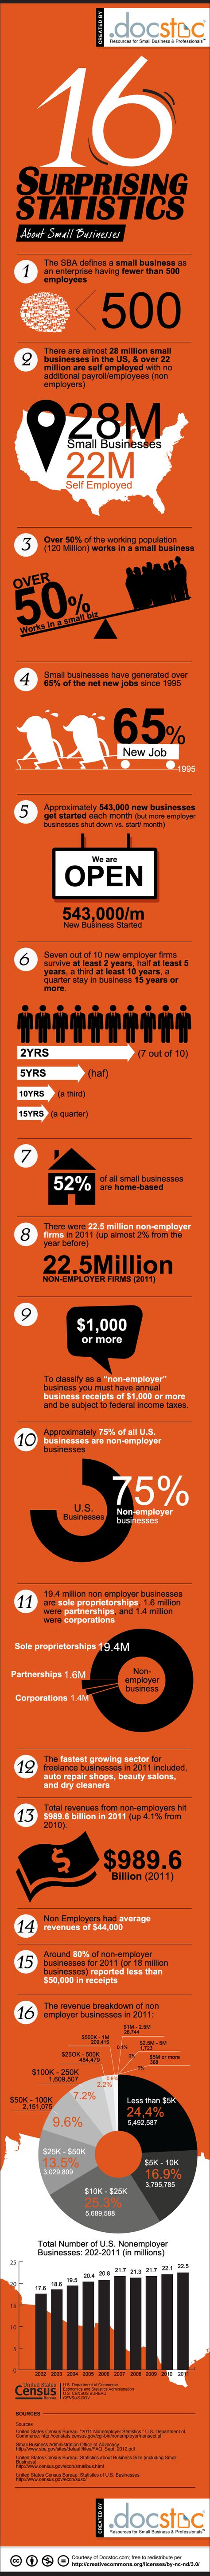 16 Astonishing Statistics About Small Businesses in America